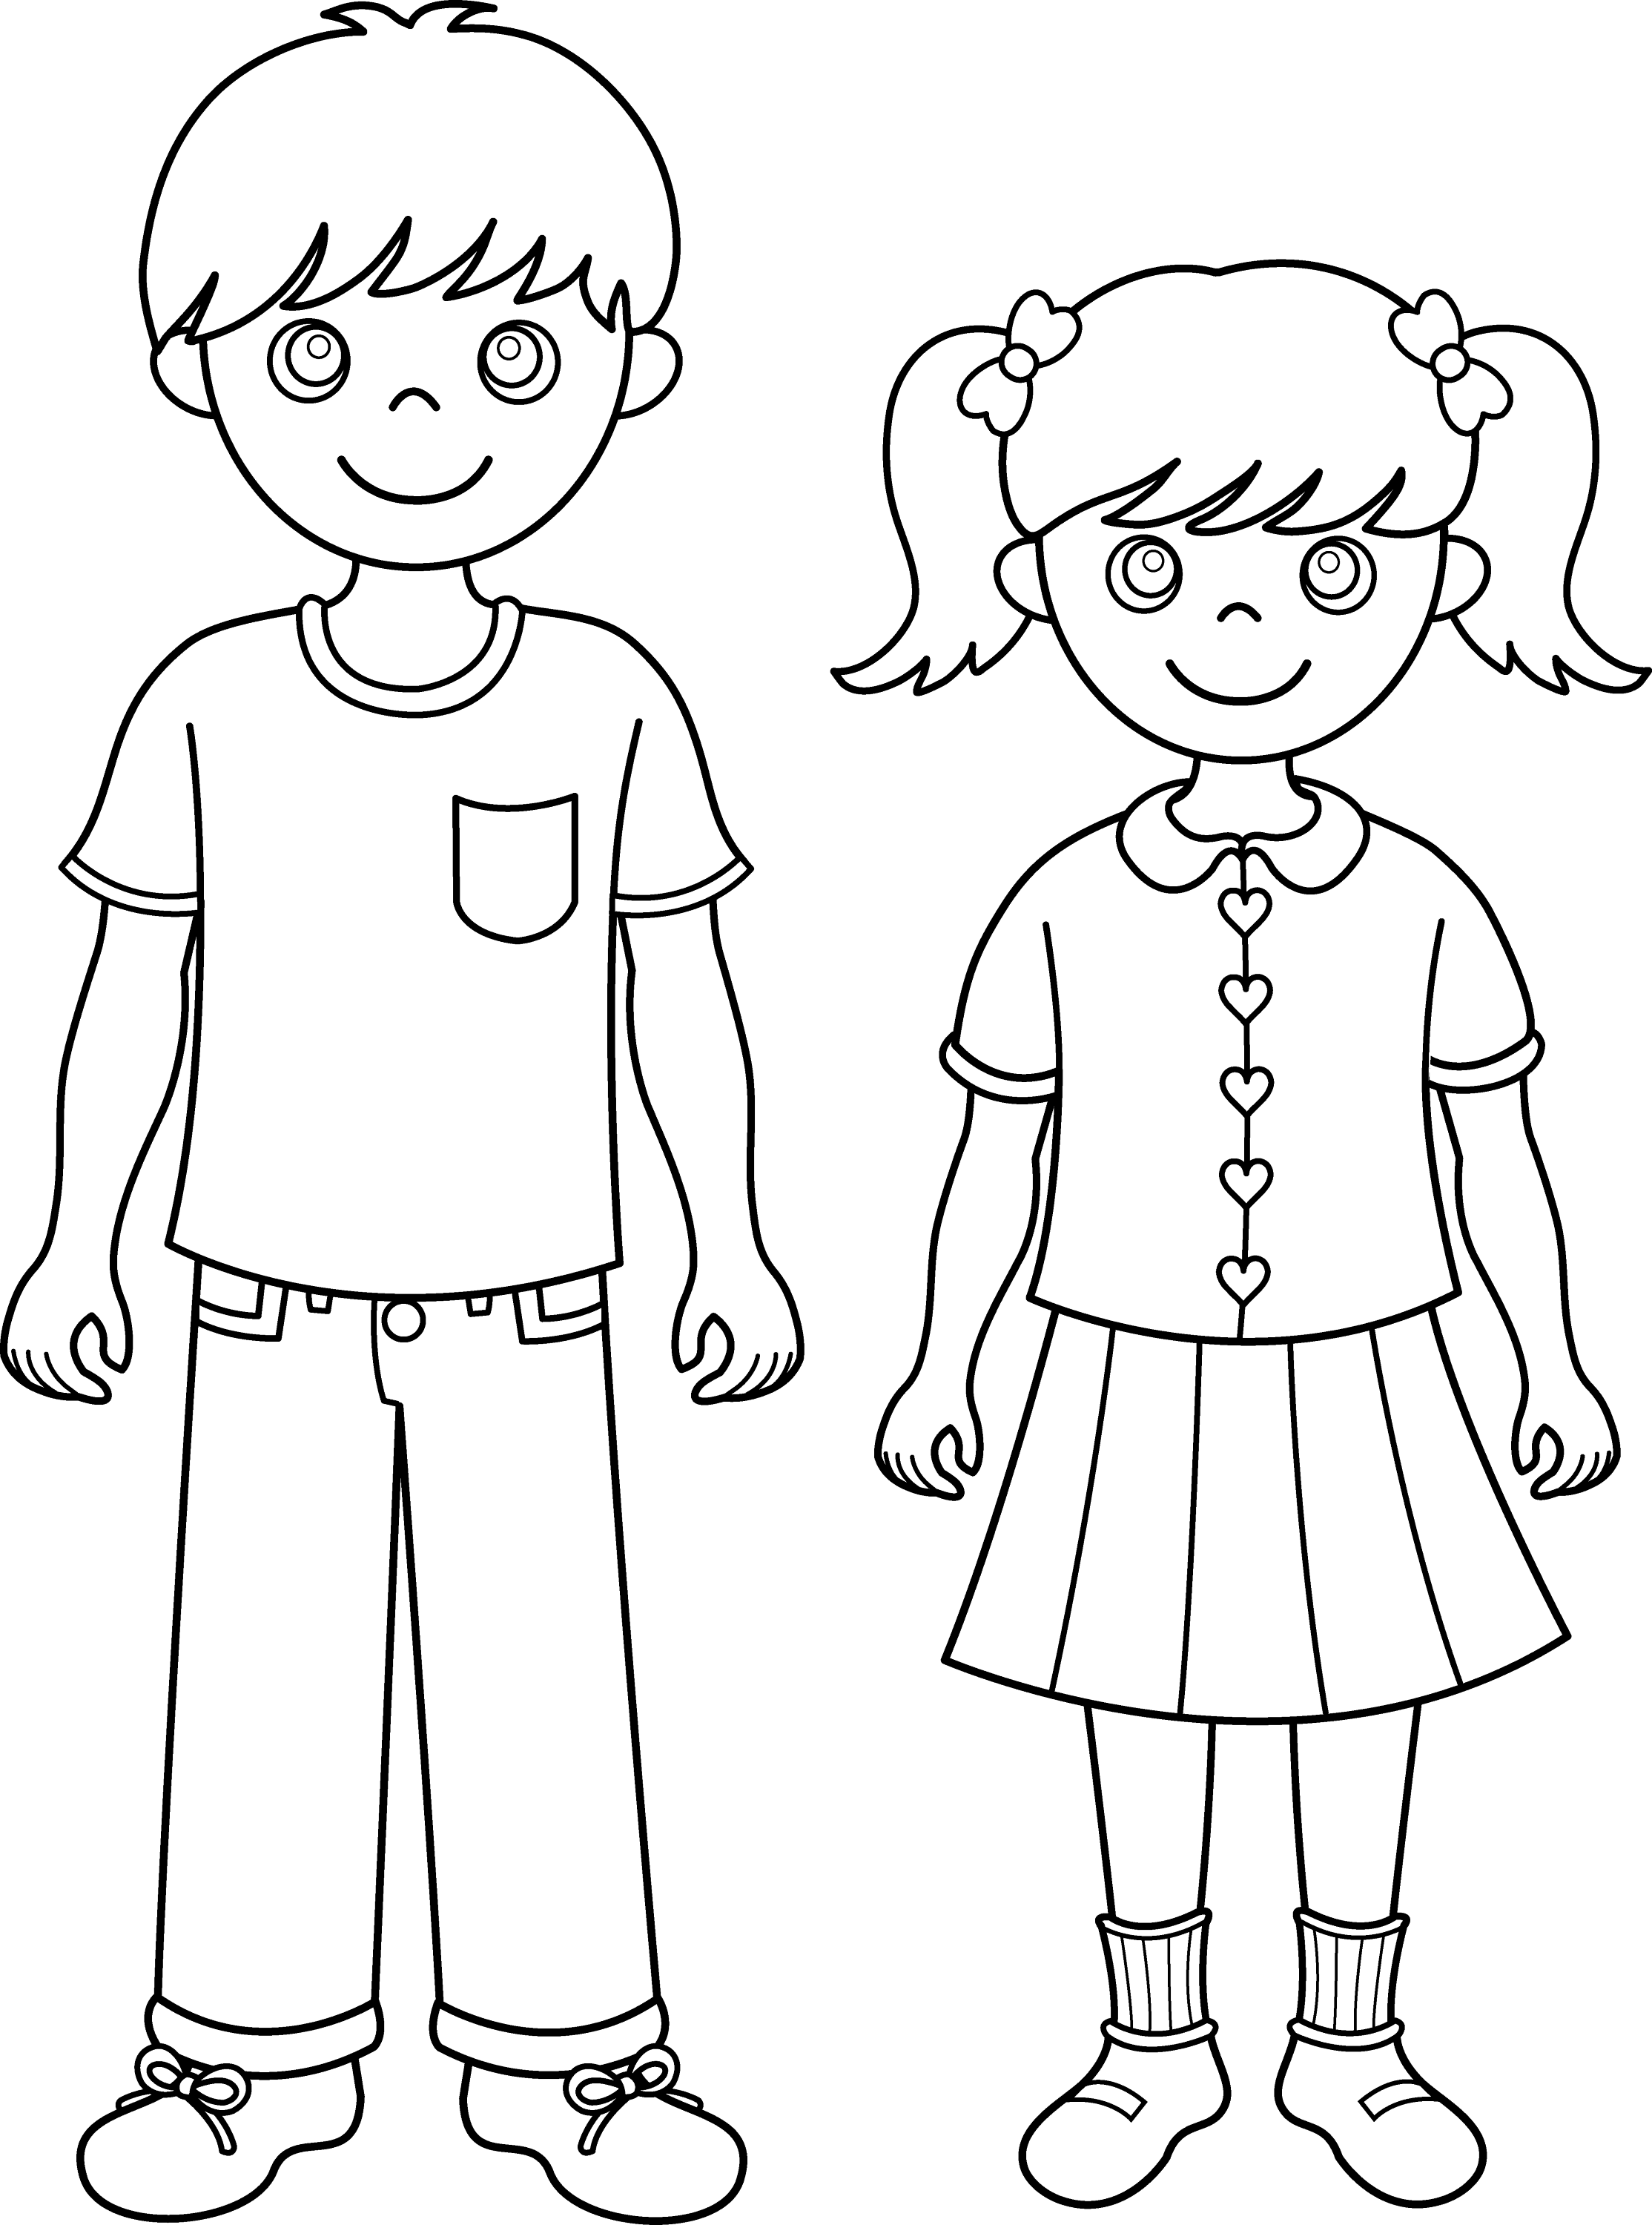 brother coloring pages - photo#1